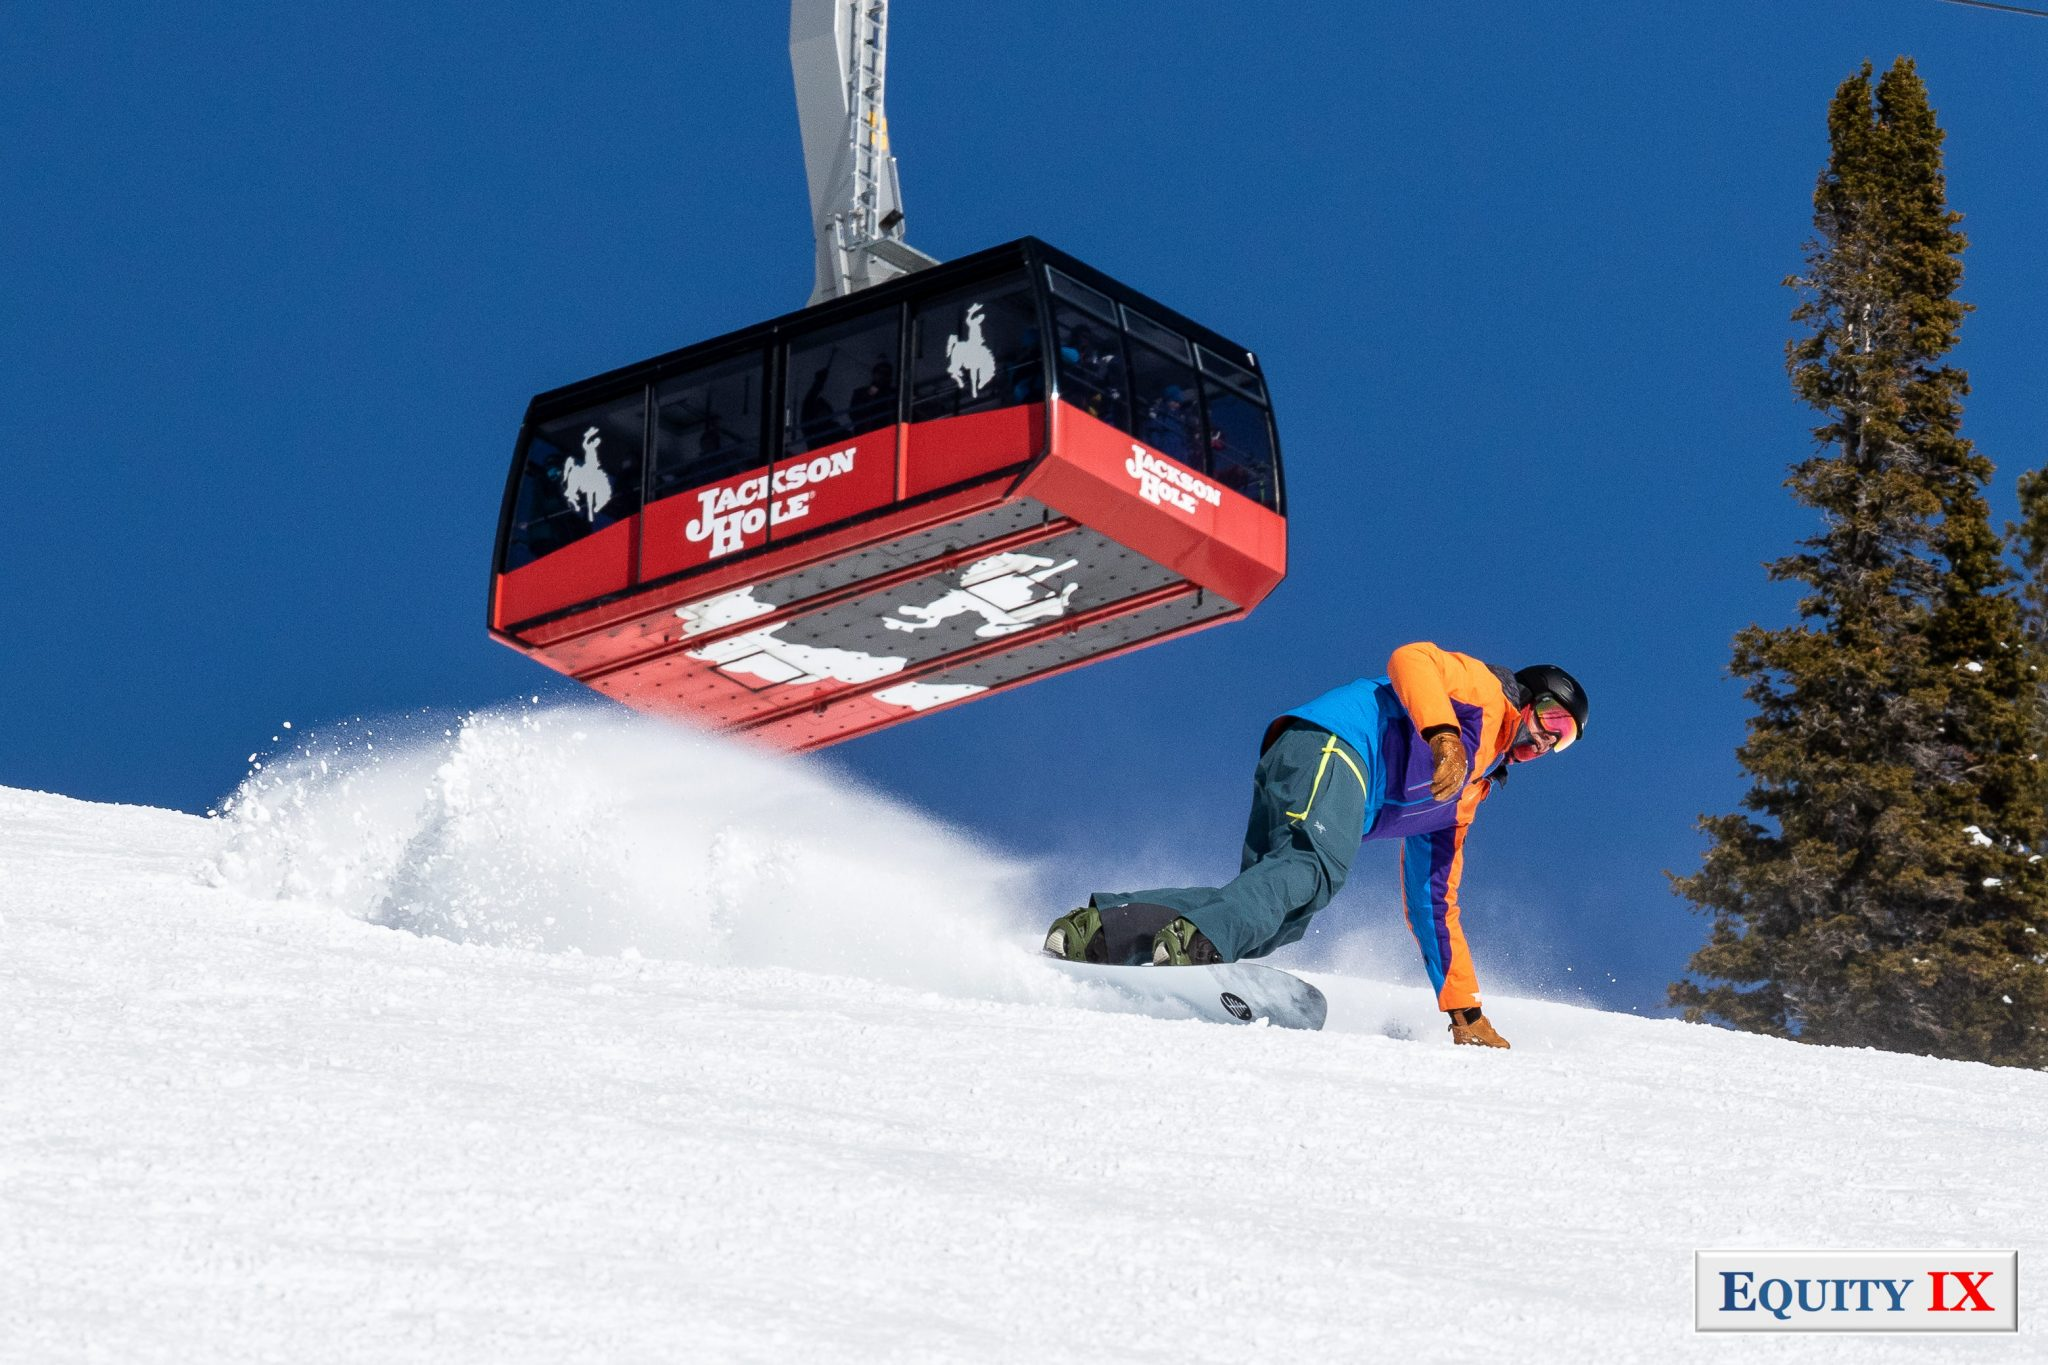 Matt snowboarding in Jackson Hole with the tram coming over the ski slop © Equity IX - SportsOgram - Leigh Ernst Friestedt